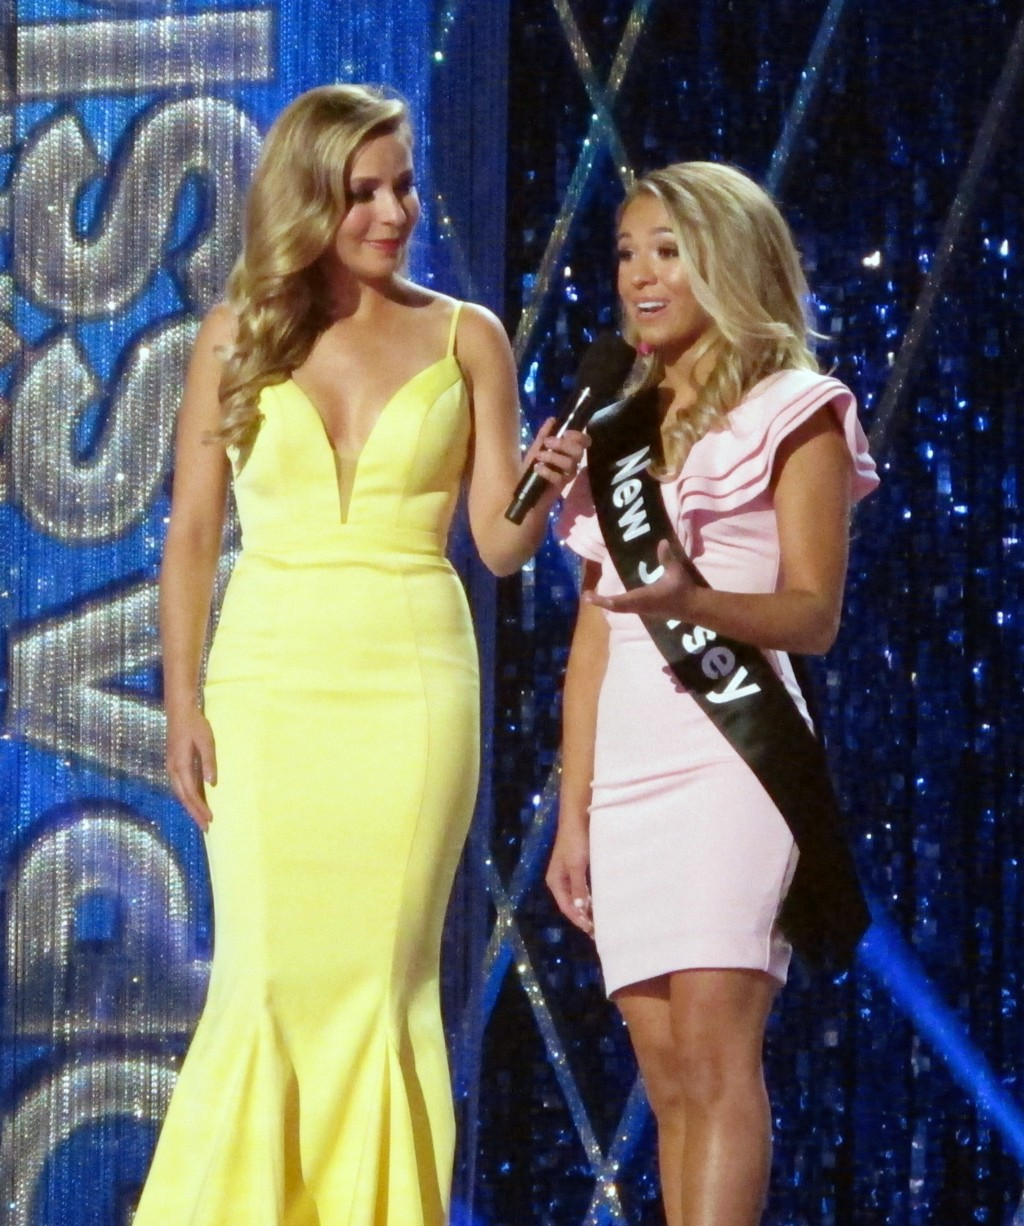 Miss America 2015 Kira Kazantsev, left, conducts an onstage interview with Miss New Jersey Jaime Gialloreto during the second night of preliminary com...